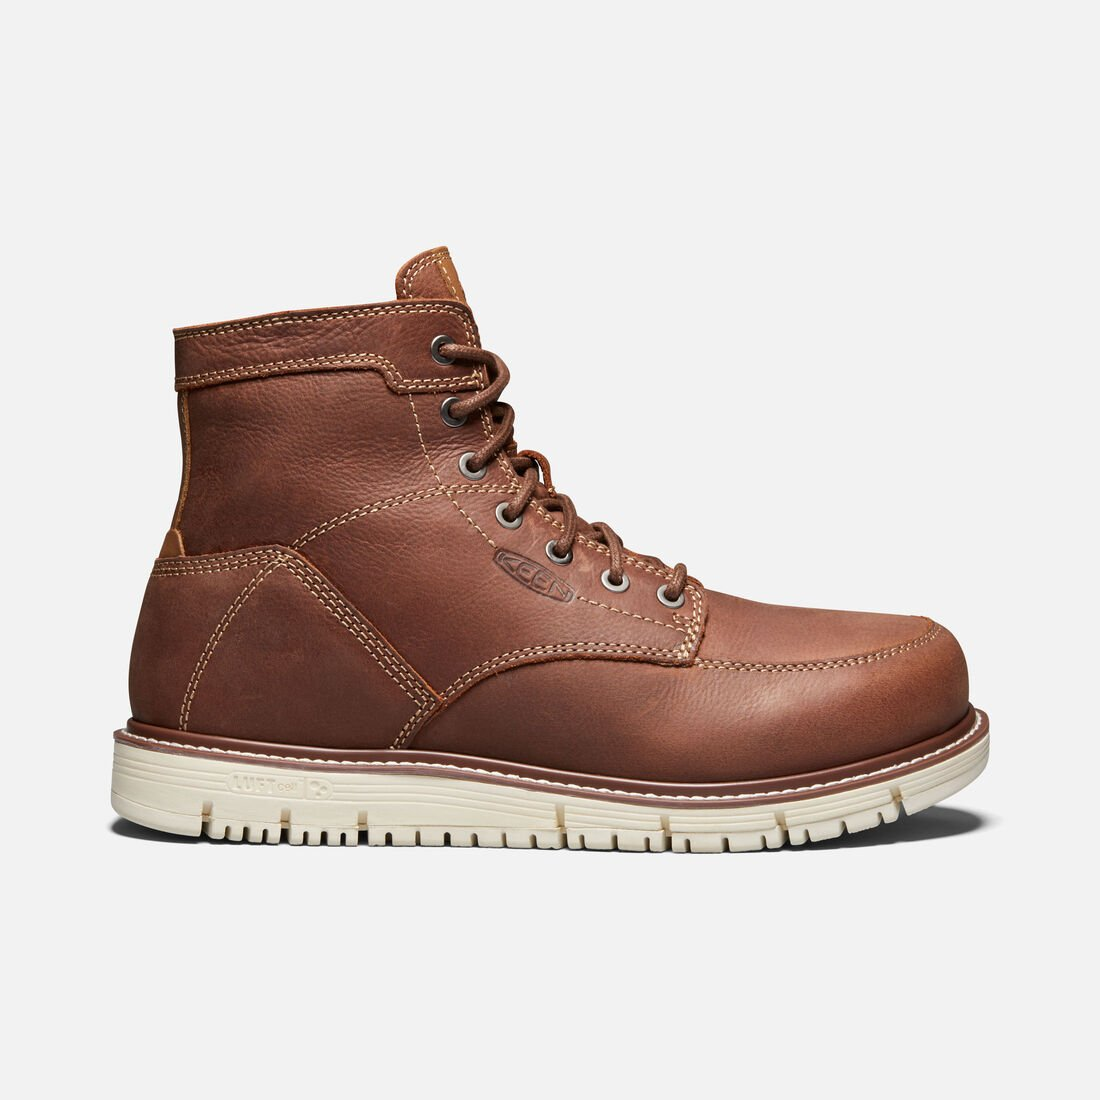 "Men's San Jose 6"" Boot (Soft Toe) in GINGERBREAD/OFF WHITE - large view."